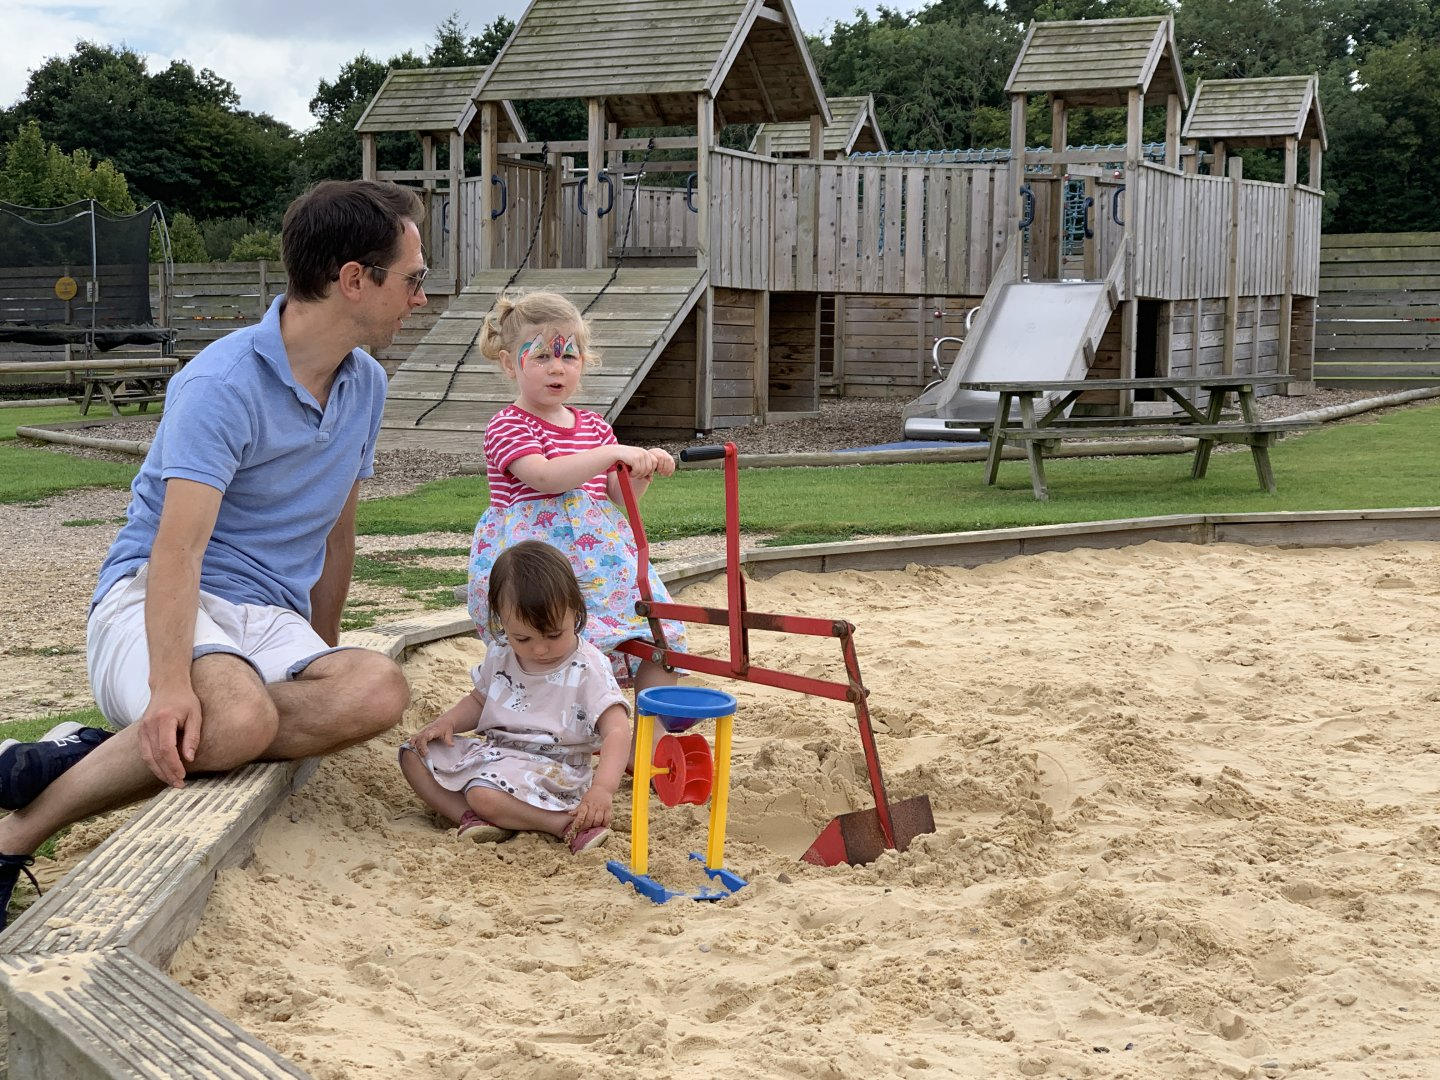 M and B play in the sandpit as Matthew sits on the side, chatting to them.